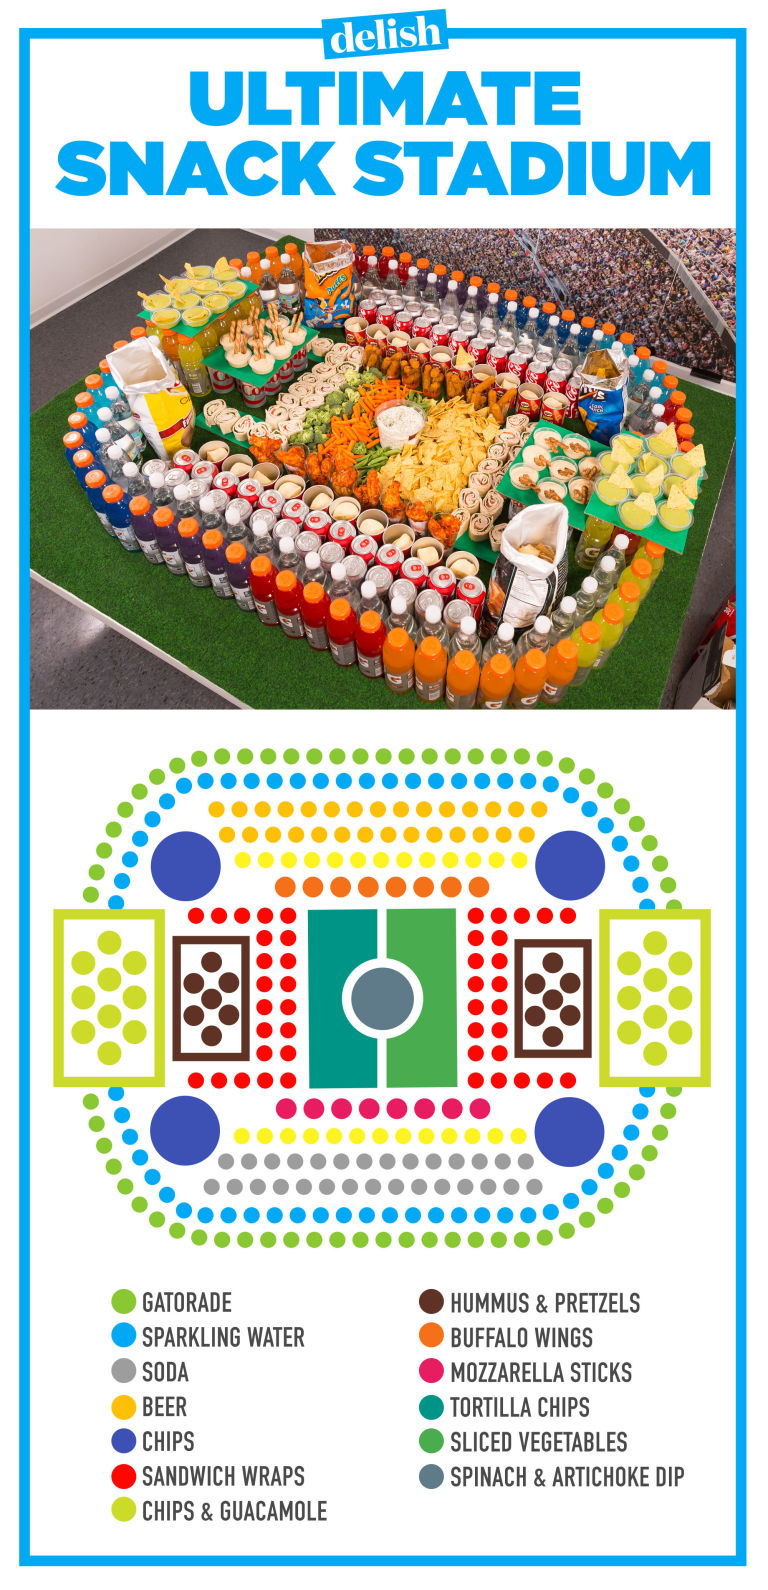 The Delish Ultimate Snack Stadium